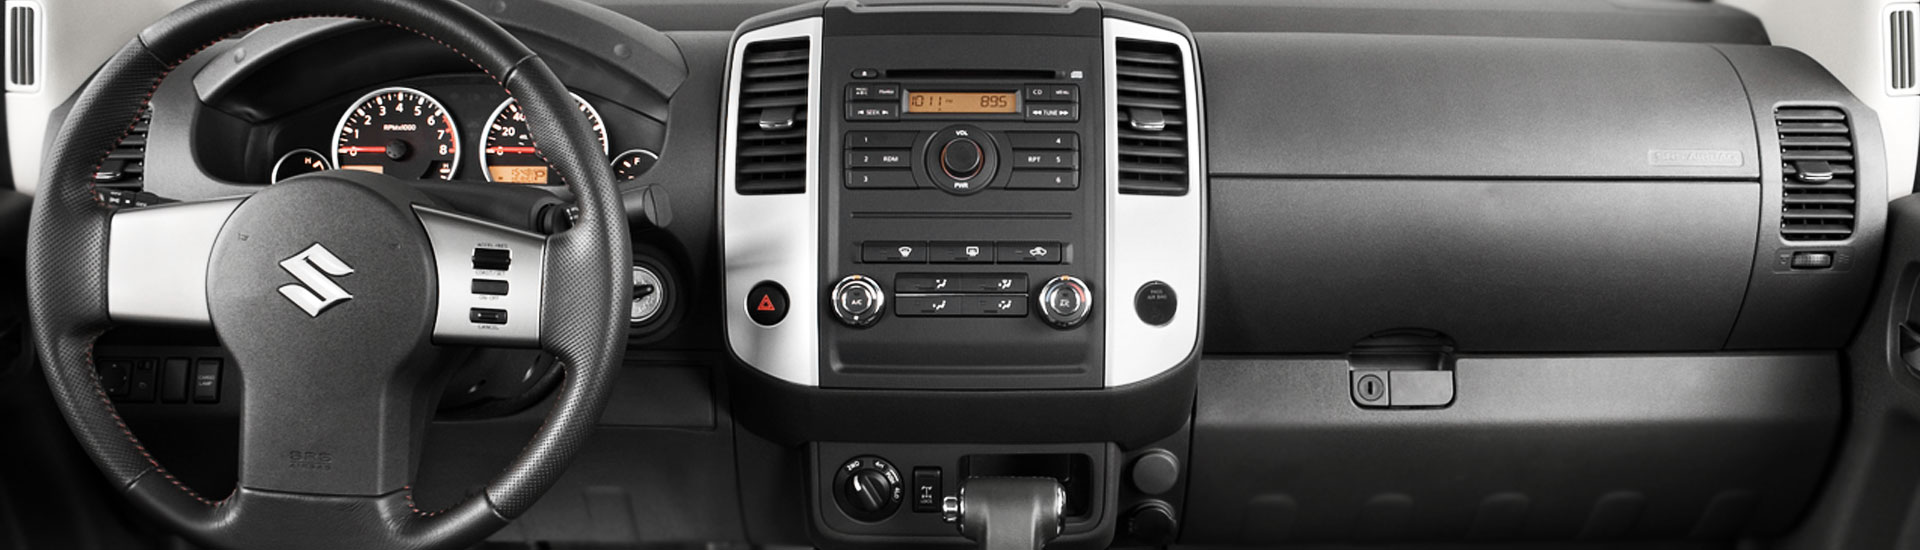 2010 Suzuki Equator Custom Dash Kits